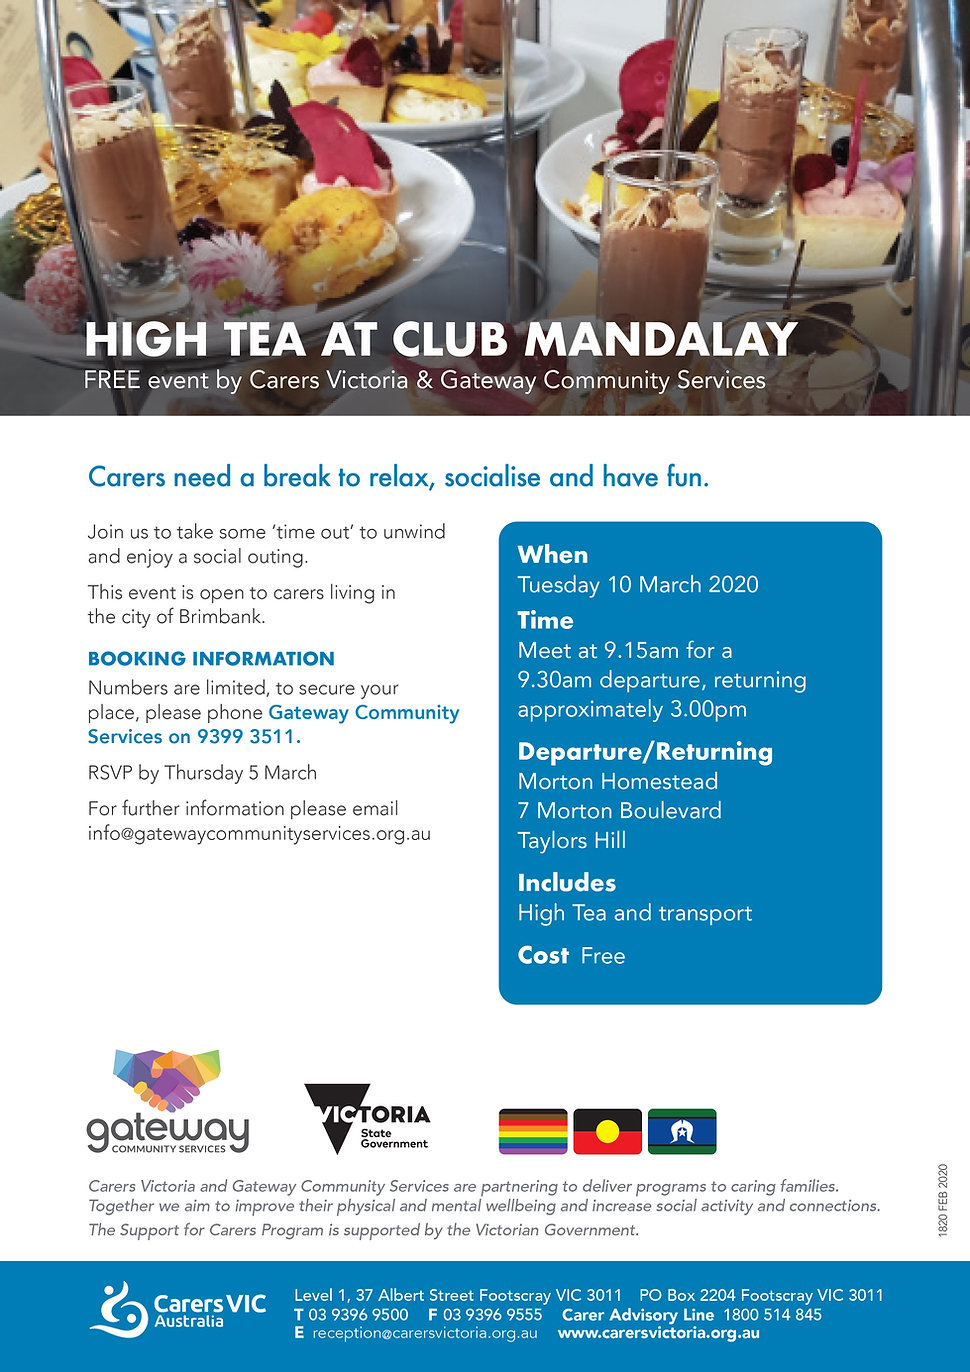 Carers VIC and Gateway Community Servcie